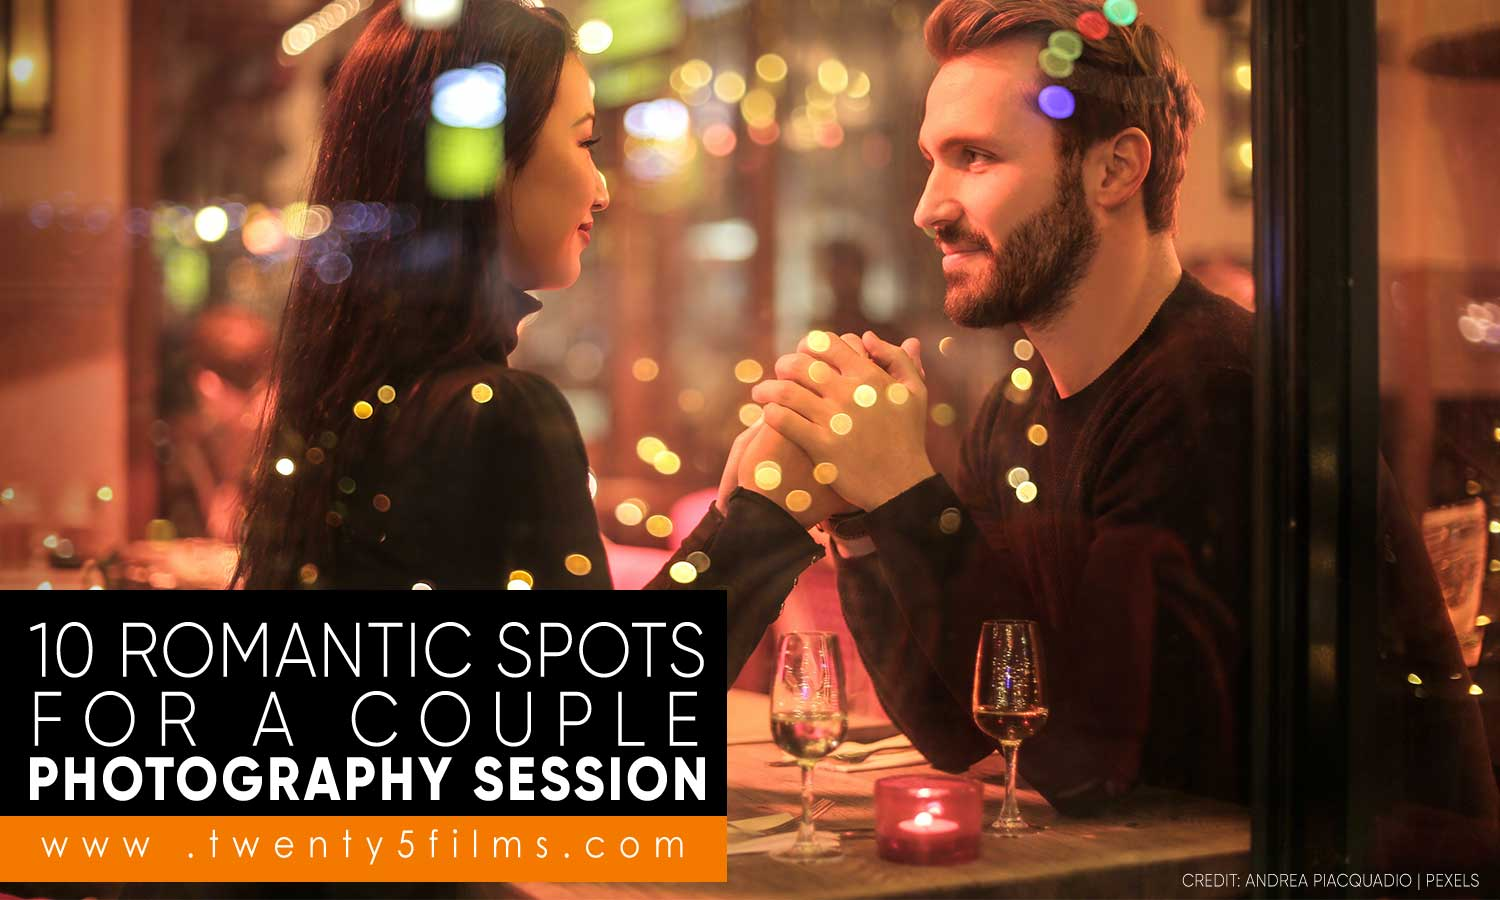 10 Romantic Spots for a Couple Photography Session